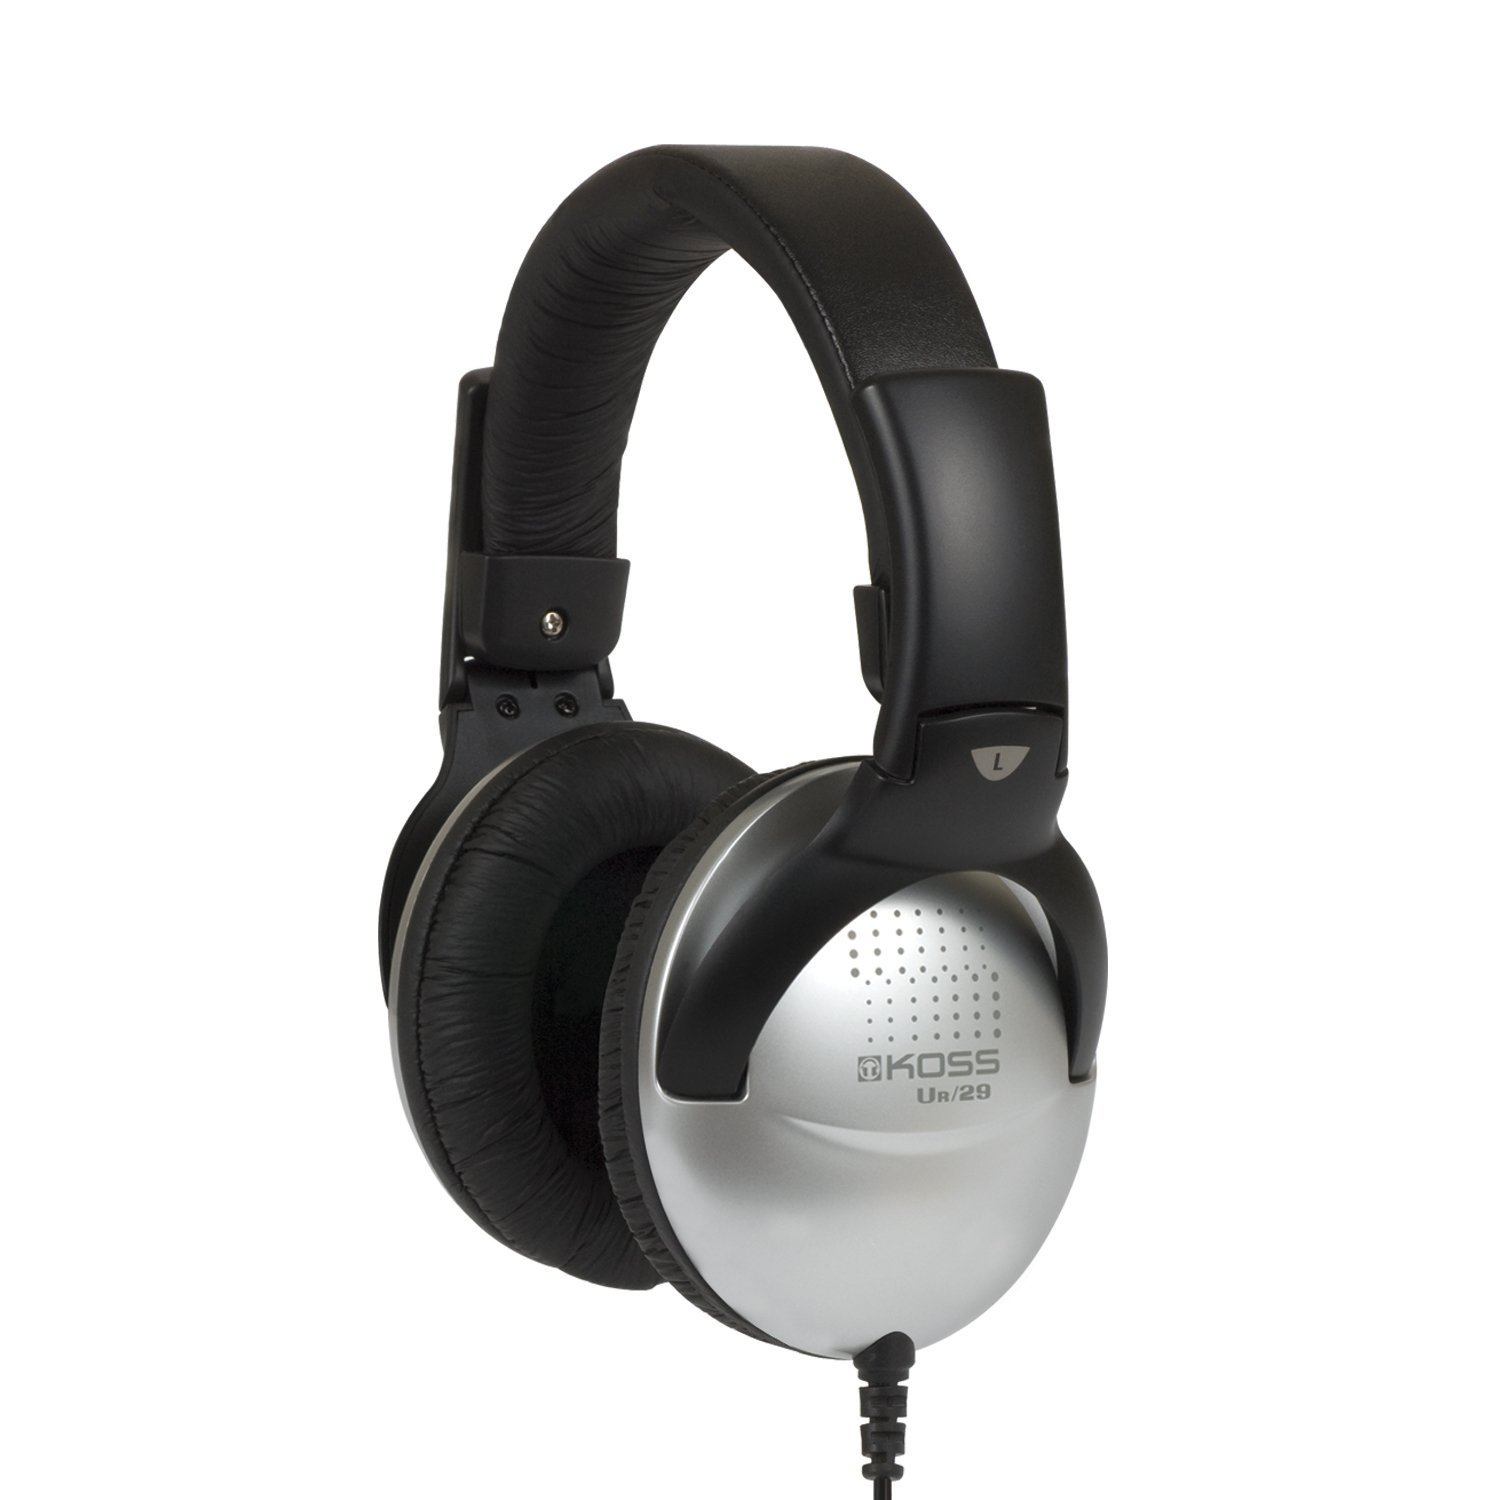 2Y77570 UR29 Home Stereo Headphone By Koss by Koss